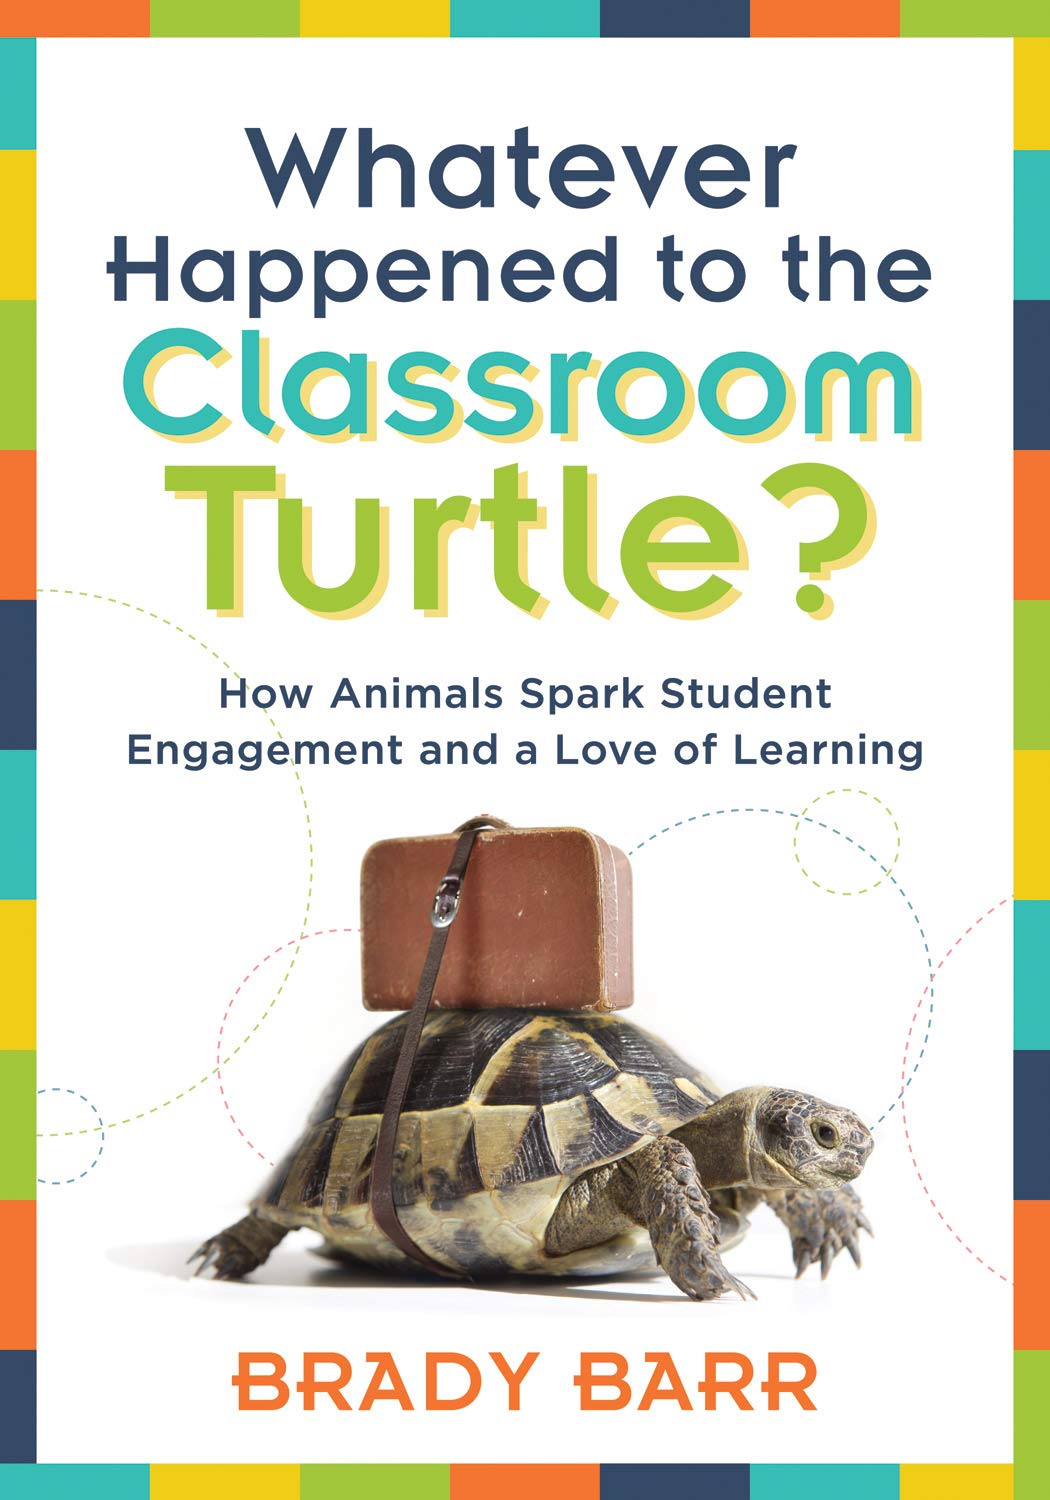 Buy Whatever Happened To The Classroom Turtle How Animals Spark Student Engagement And A Love Of Learning How Animals Spark Student Engagement And A With Class Pets And Science Based Activities Book